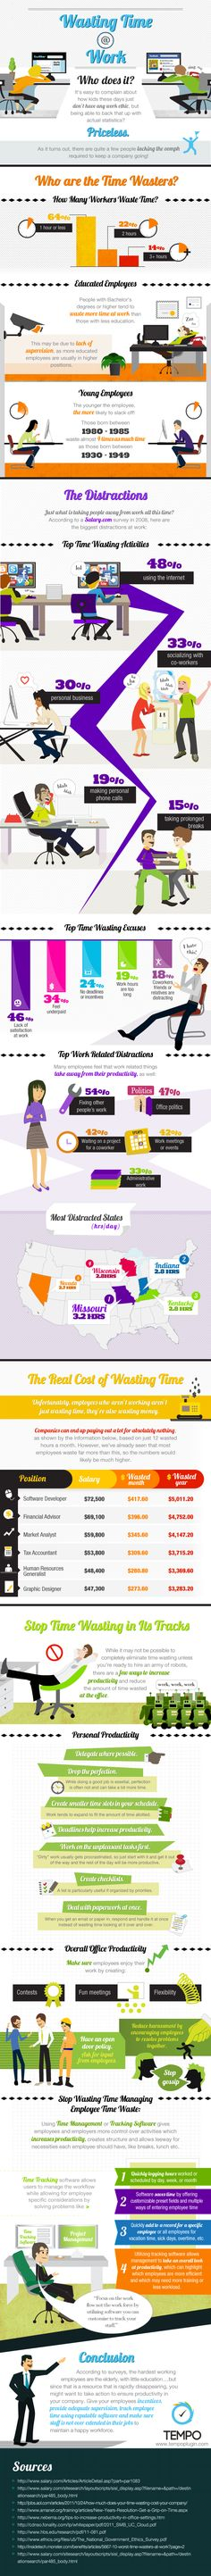 Infographic Indicates Workers Waste Time Because They Think Their Jobs Suck